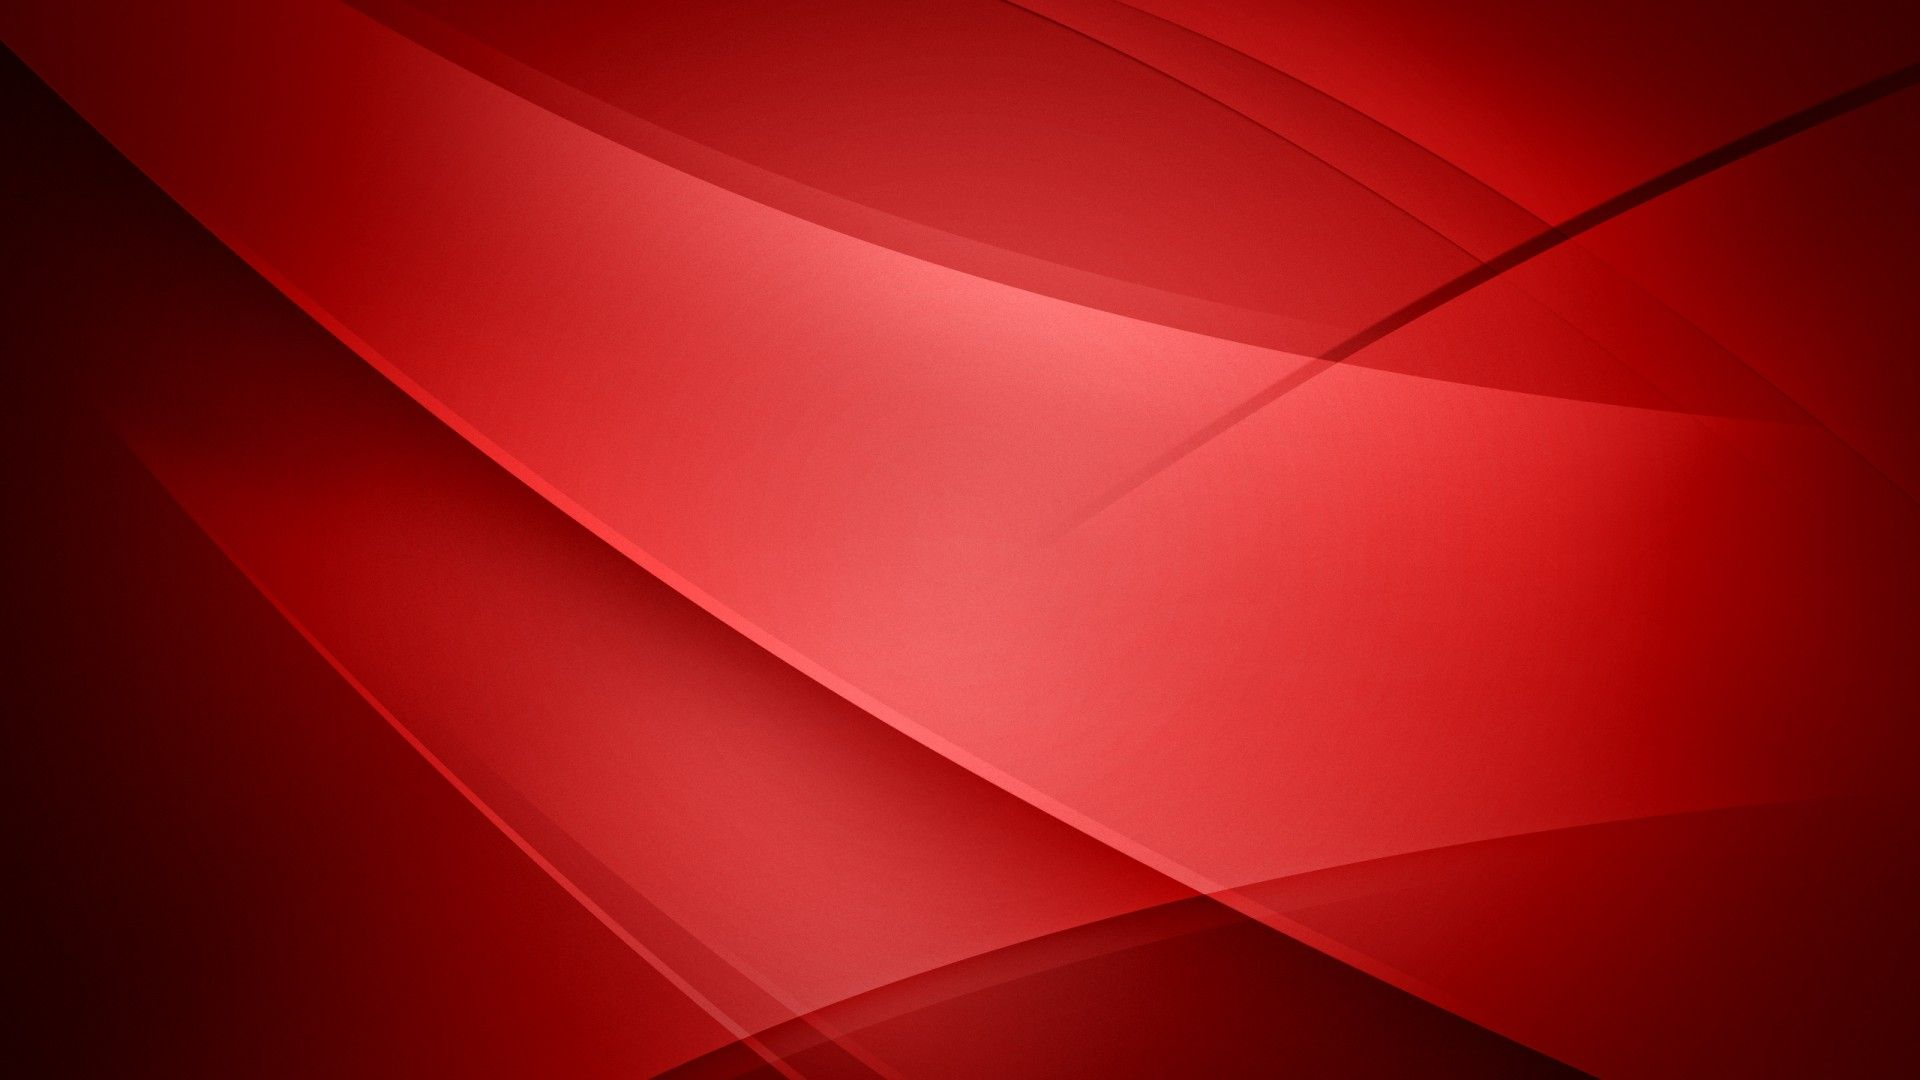 Red Wallpapers Hd Resolution> Flip Wallpapers> Descargar gratis